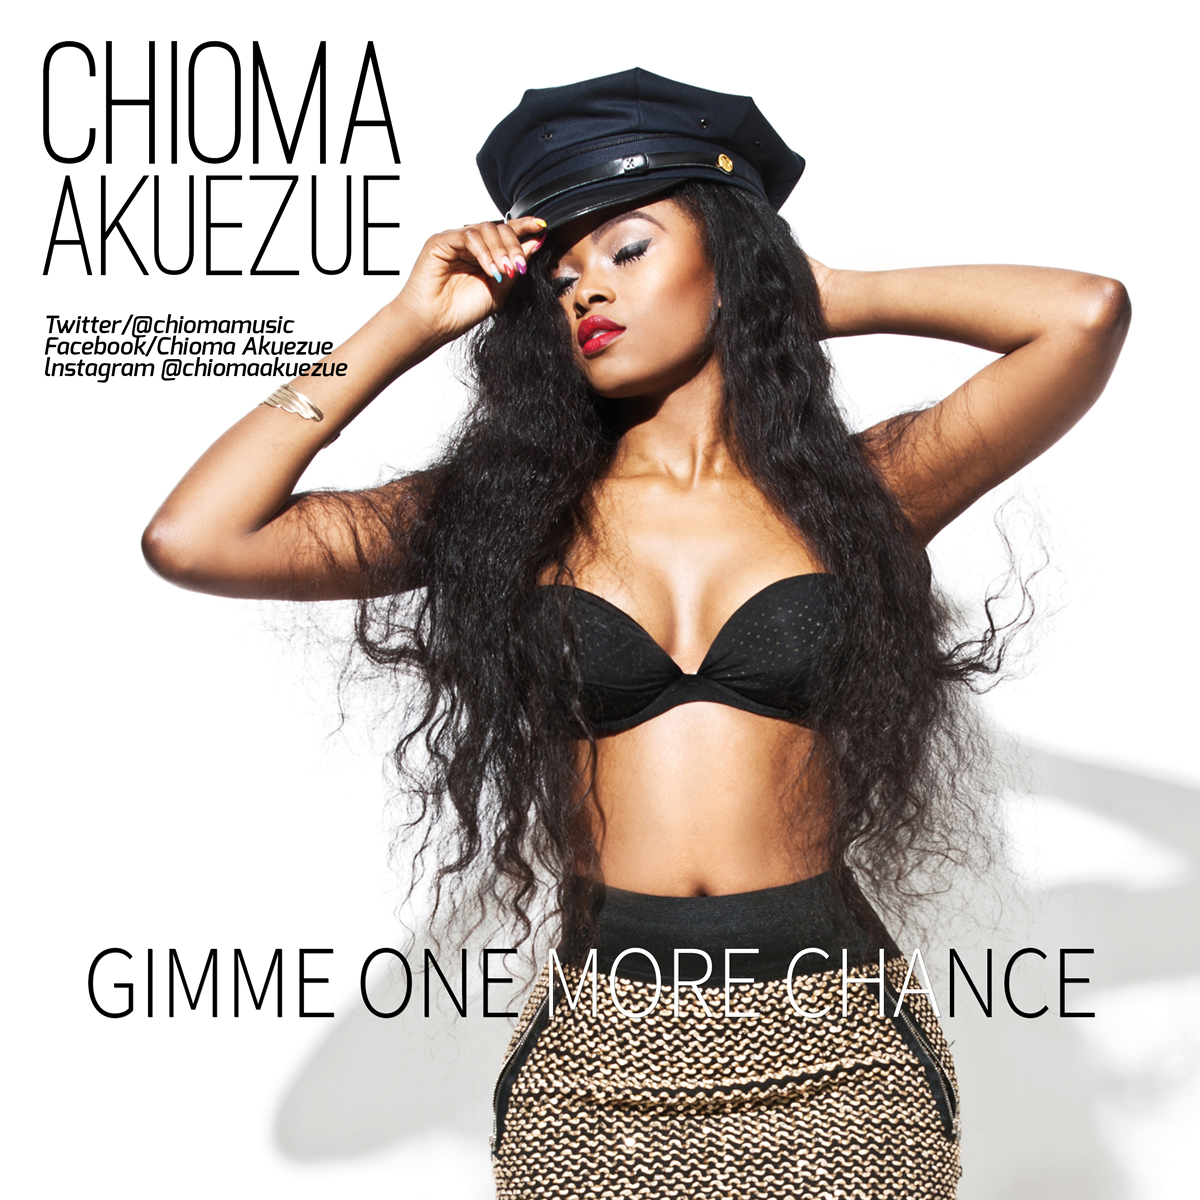 VIDEO: Chioma Akuezue – Gimme One More Chance